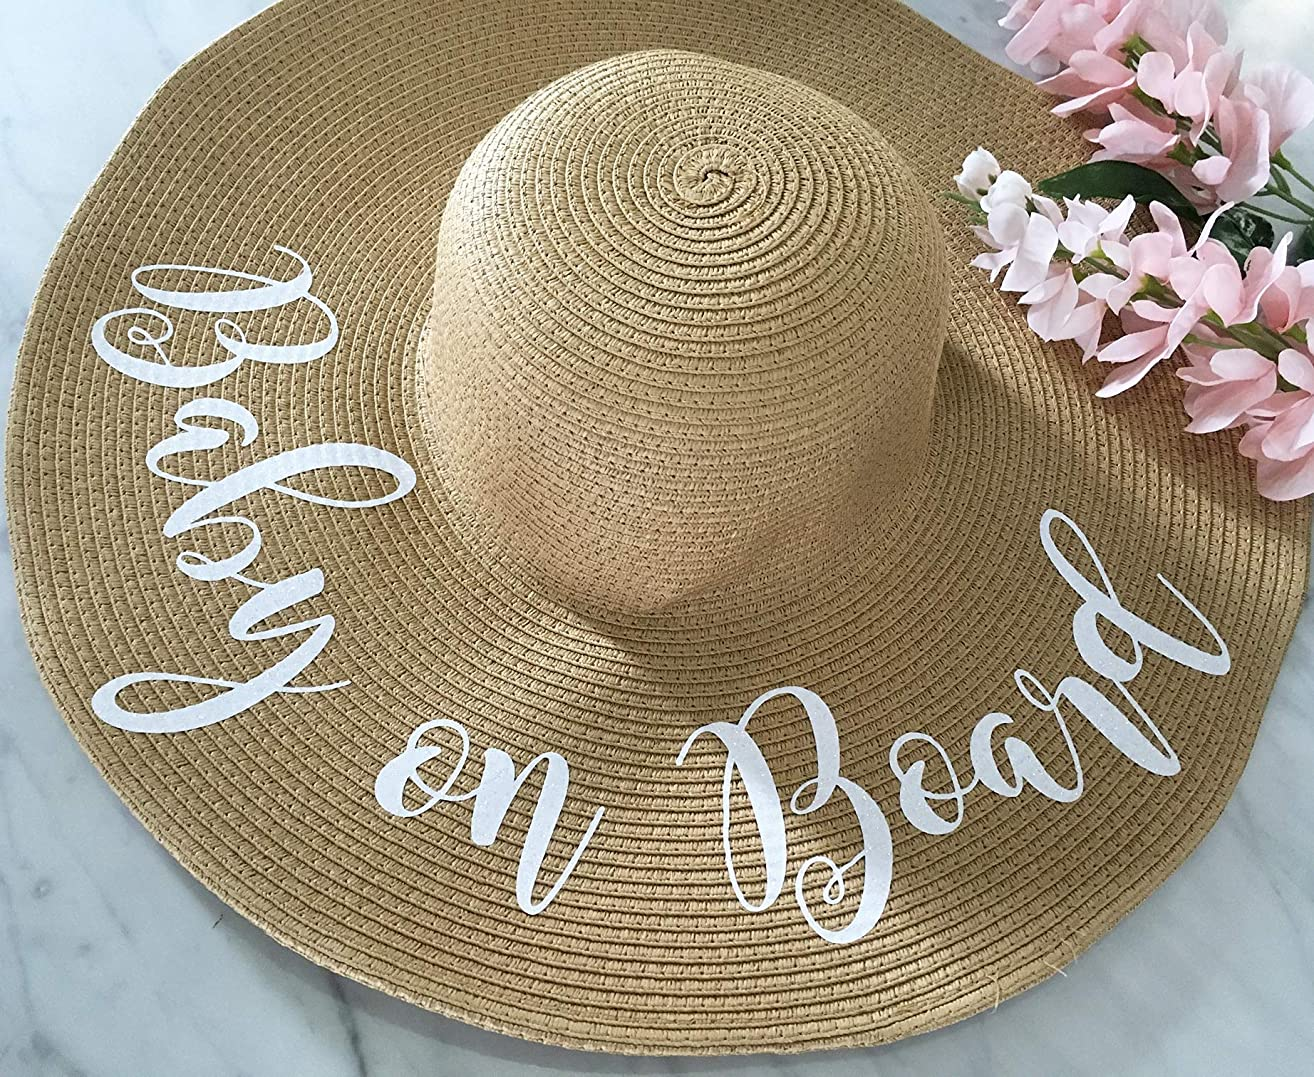 Baby on Board Straw Hat, Pregnancy Announcement